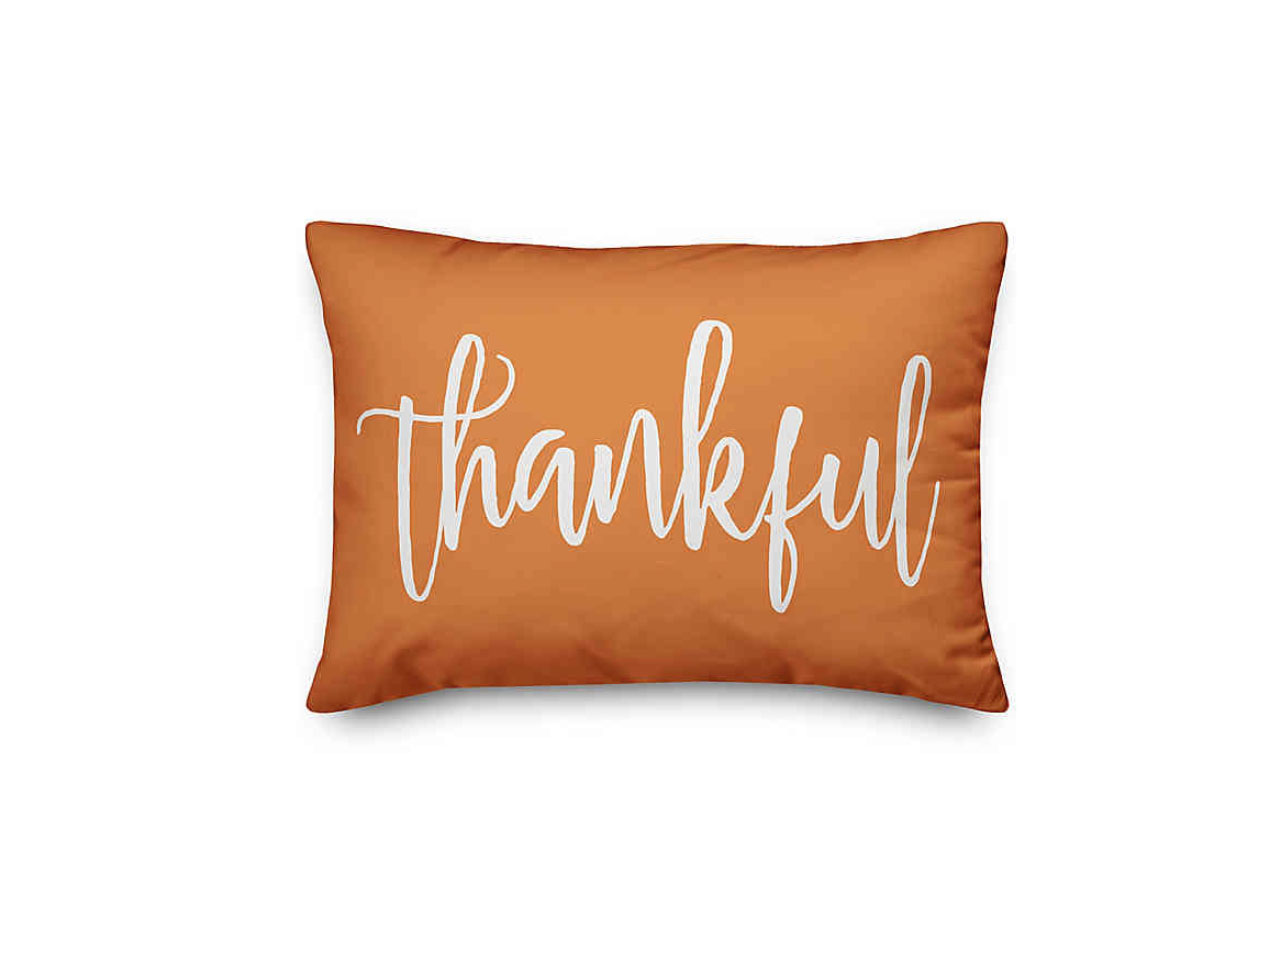 Thankful and Blessed Oblong Throw Pillow